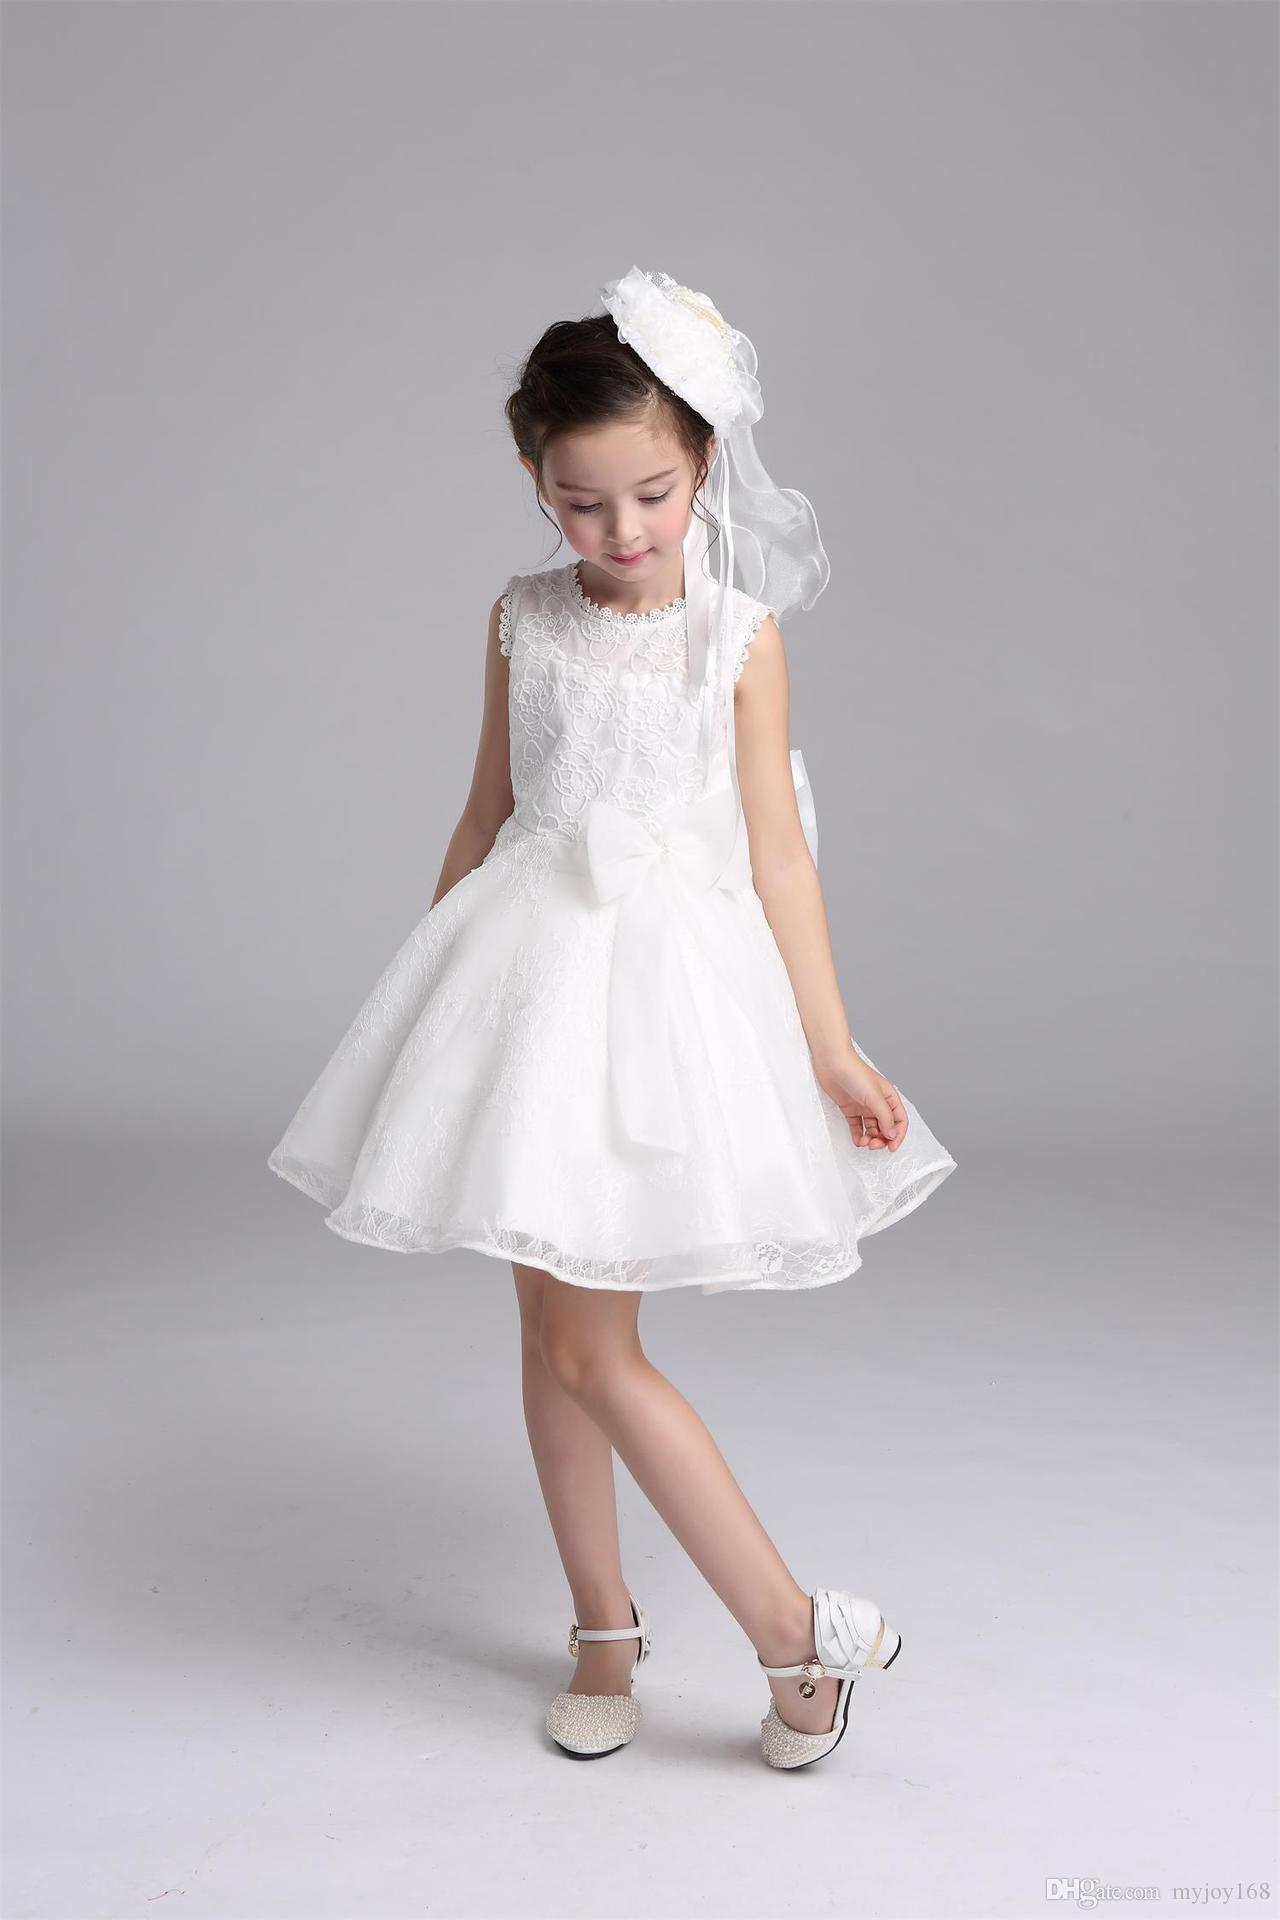 Kids dresses for girls wedding dress princess bridesmaid flower kids dresses for girls wedding dress princess bridesmaid flower girl dresses wedding party dresses baby girl ombrellifo Gallery